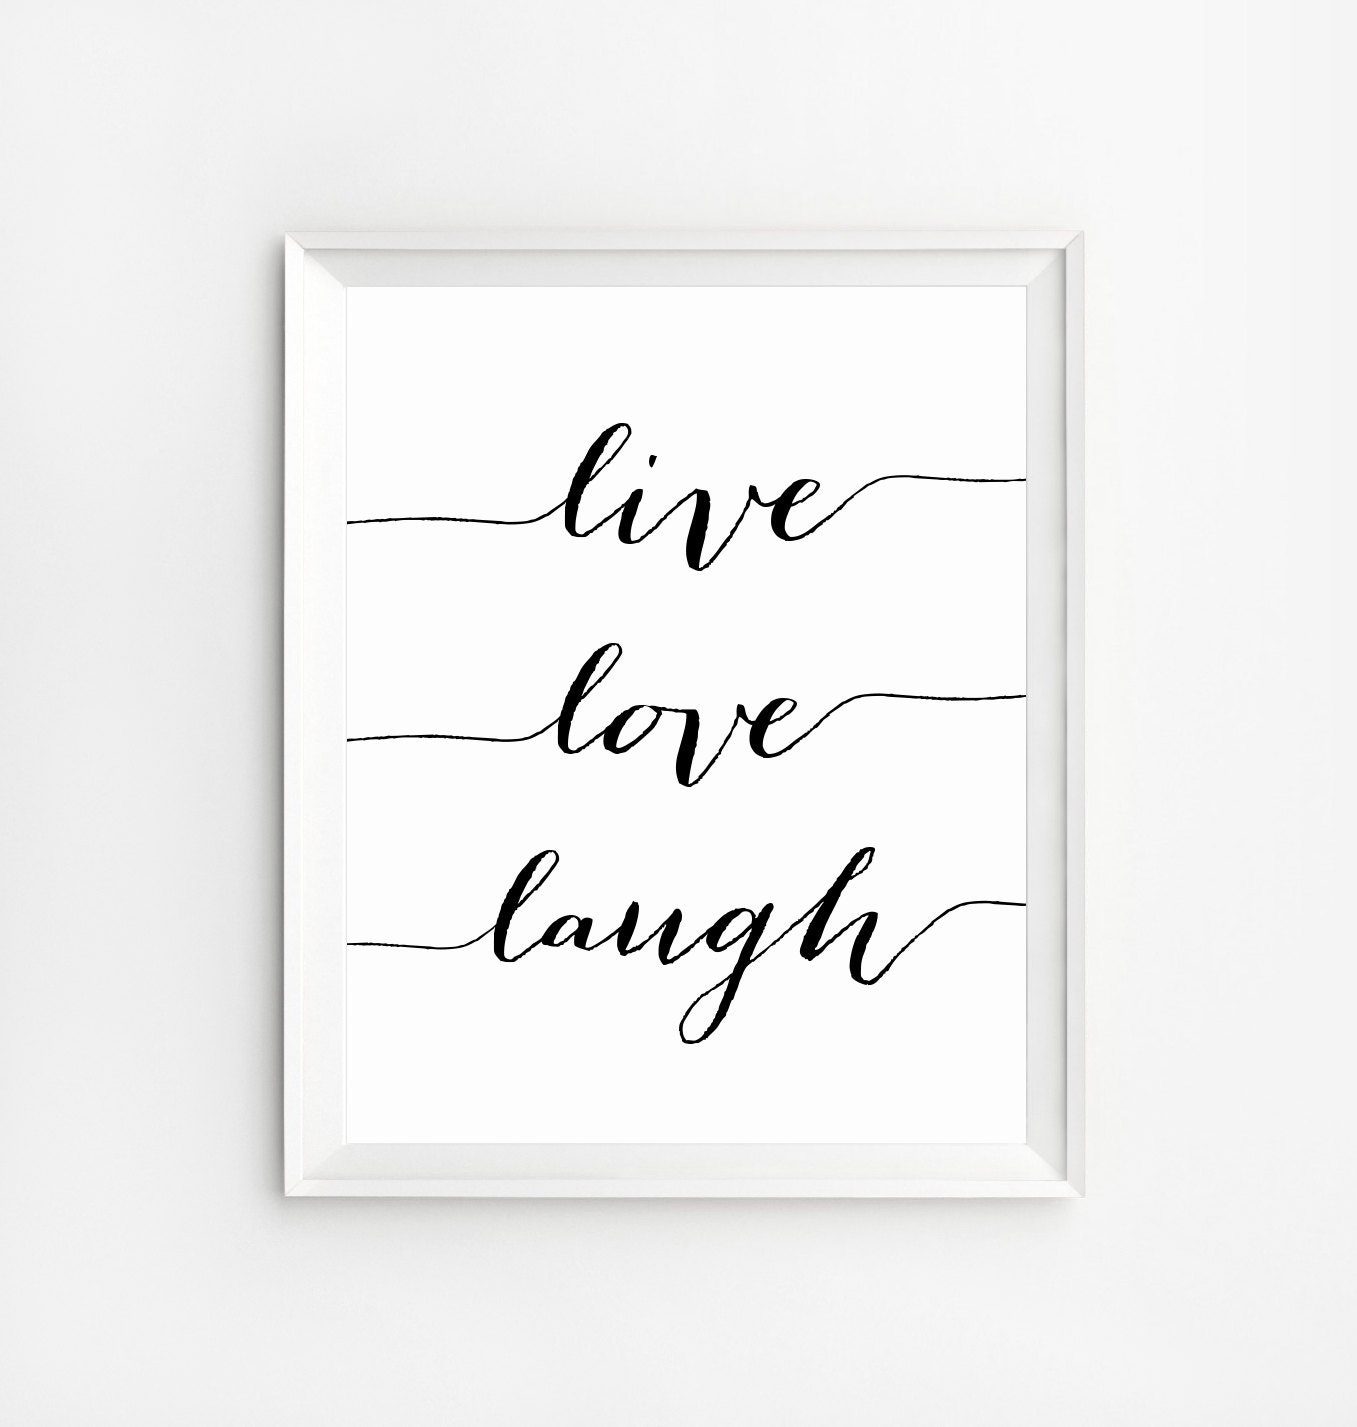 Love Art Quotes Live Love Laugh Positive Quotes Wall Art Print Wall Art